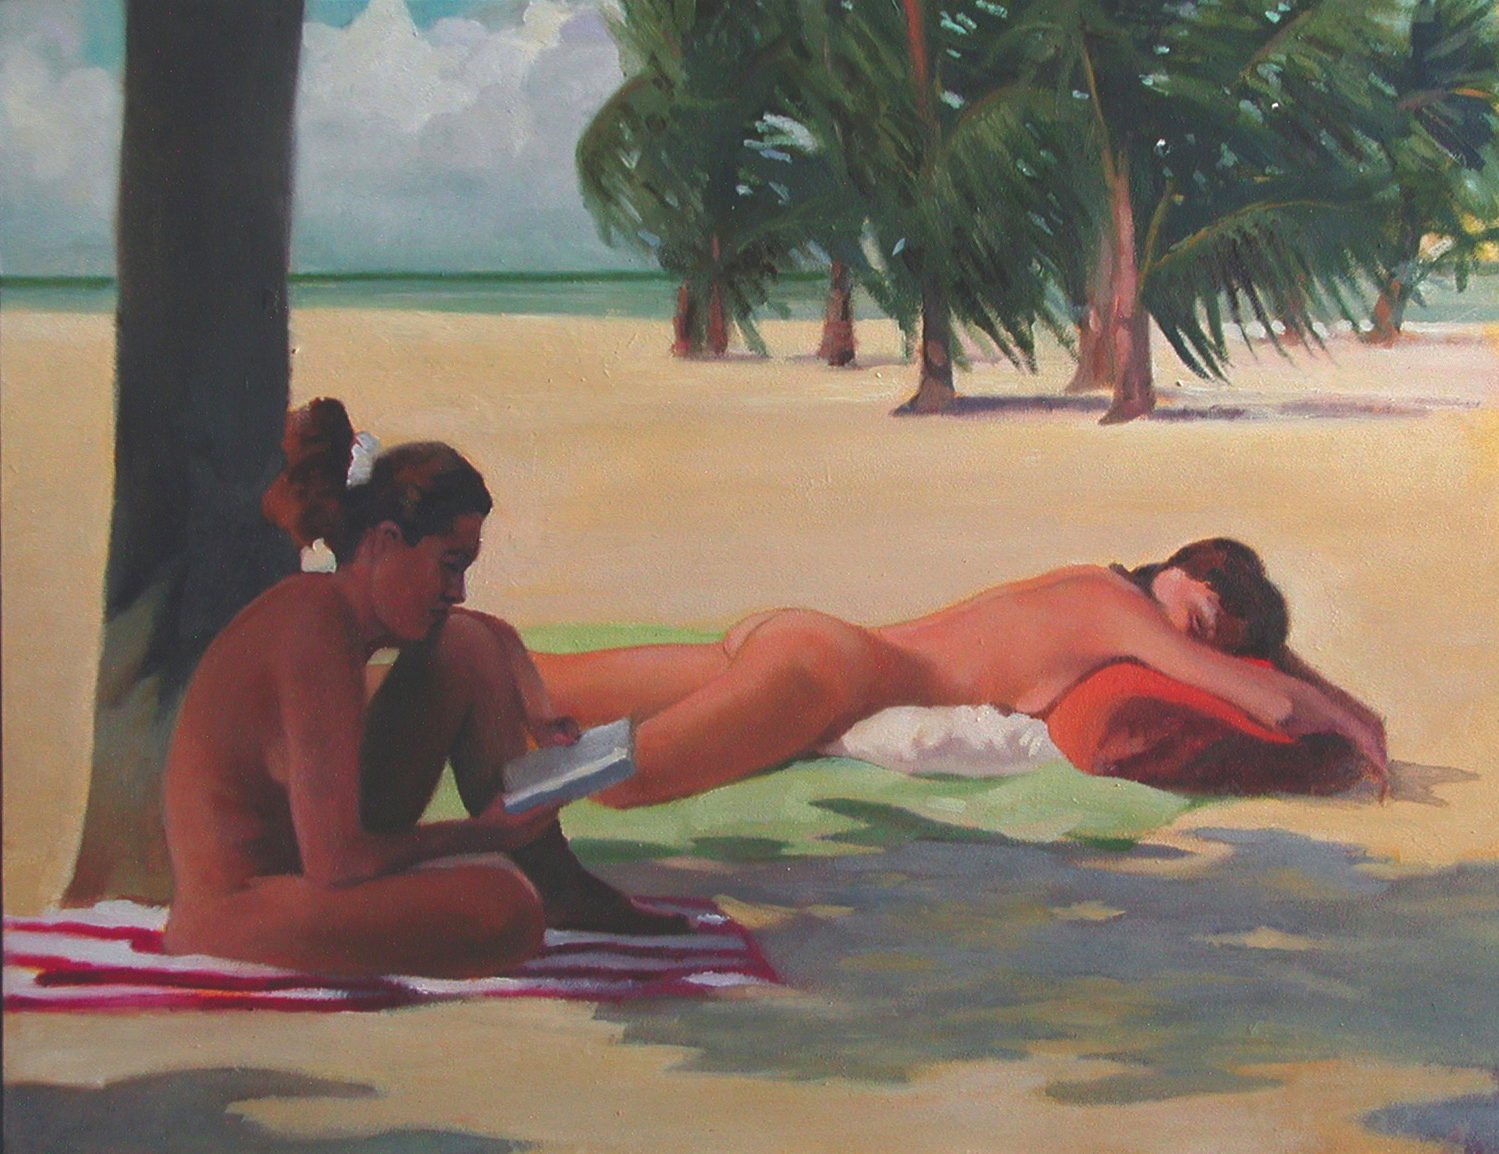 Nude sunbathers oil on panel 14x18 inches